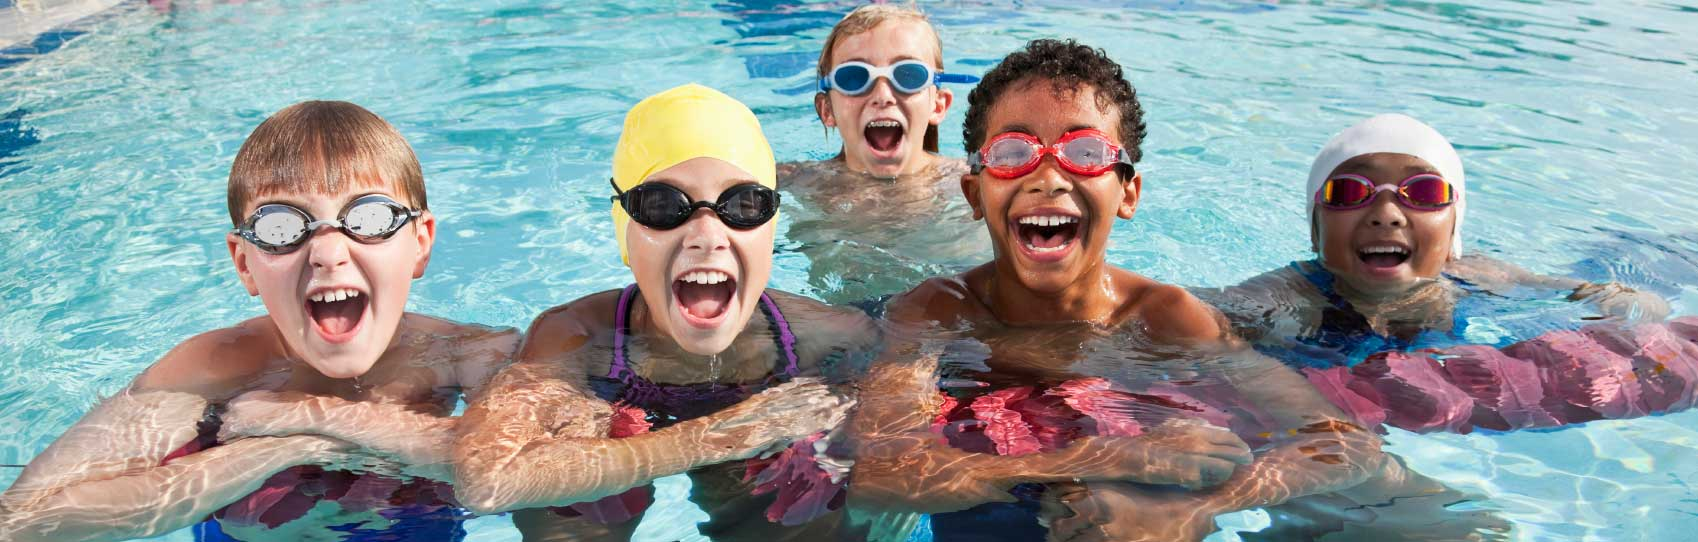 Swimming trust for Swimming images